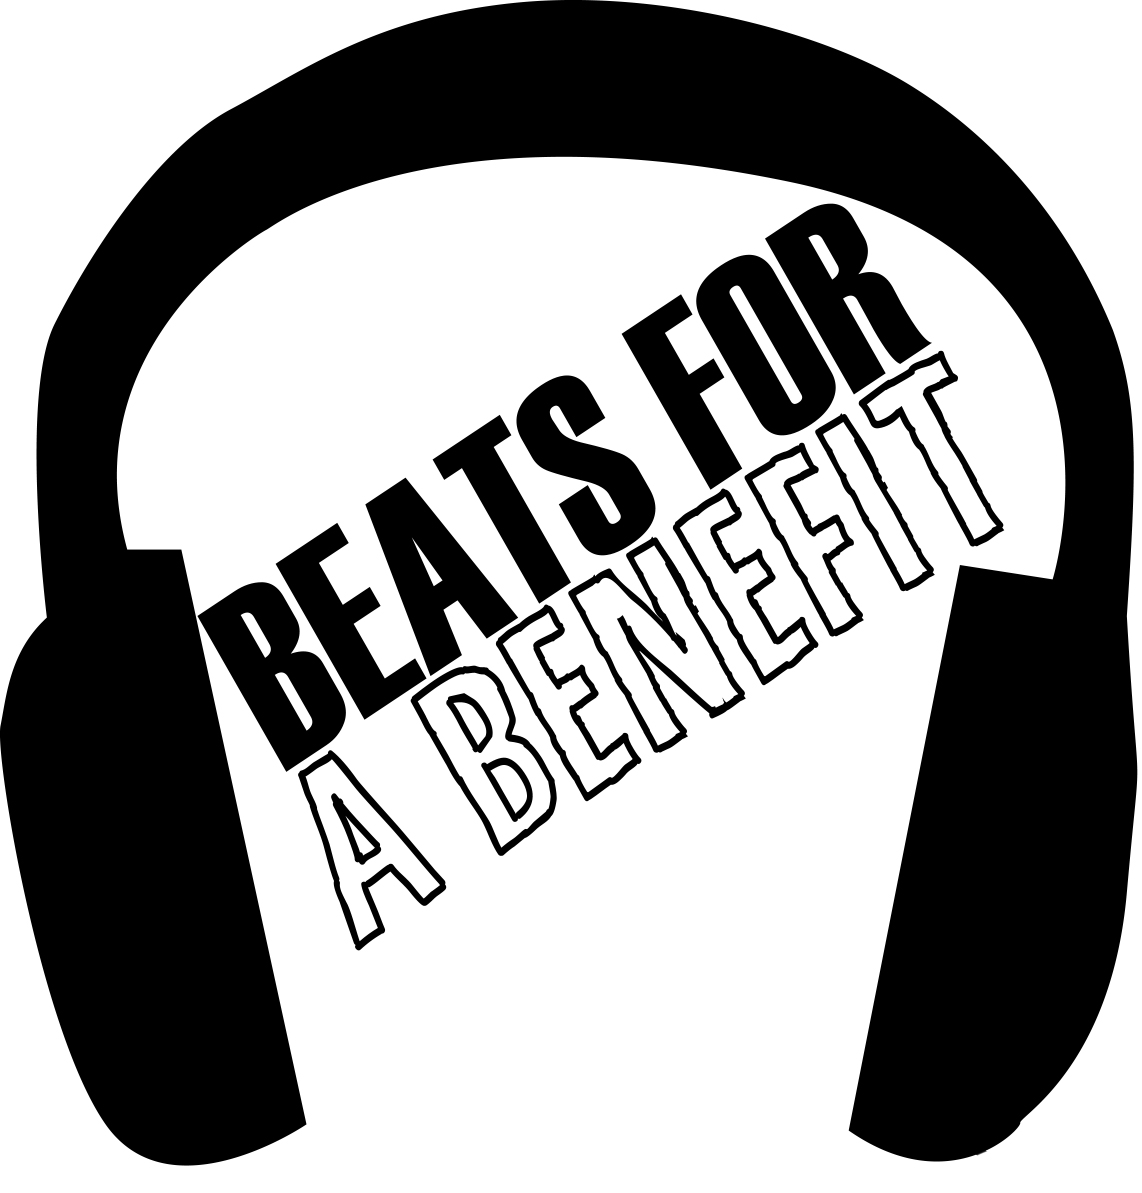 Beats for a Benefit 3: Battle of the Bands